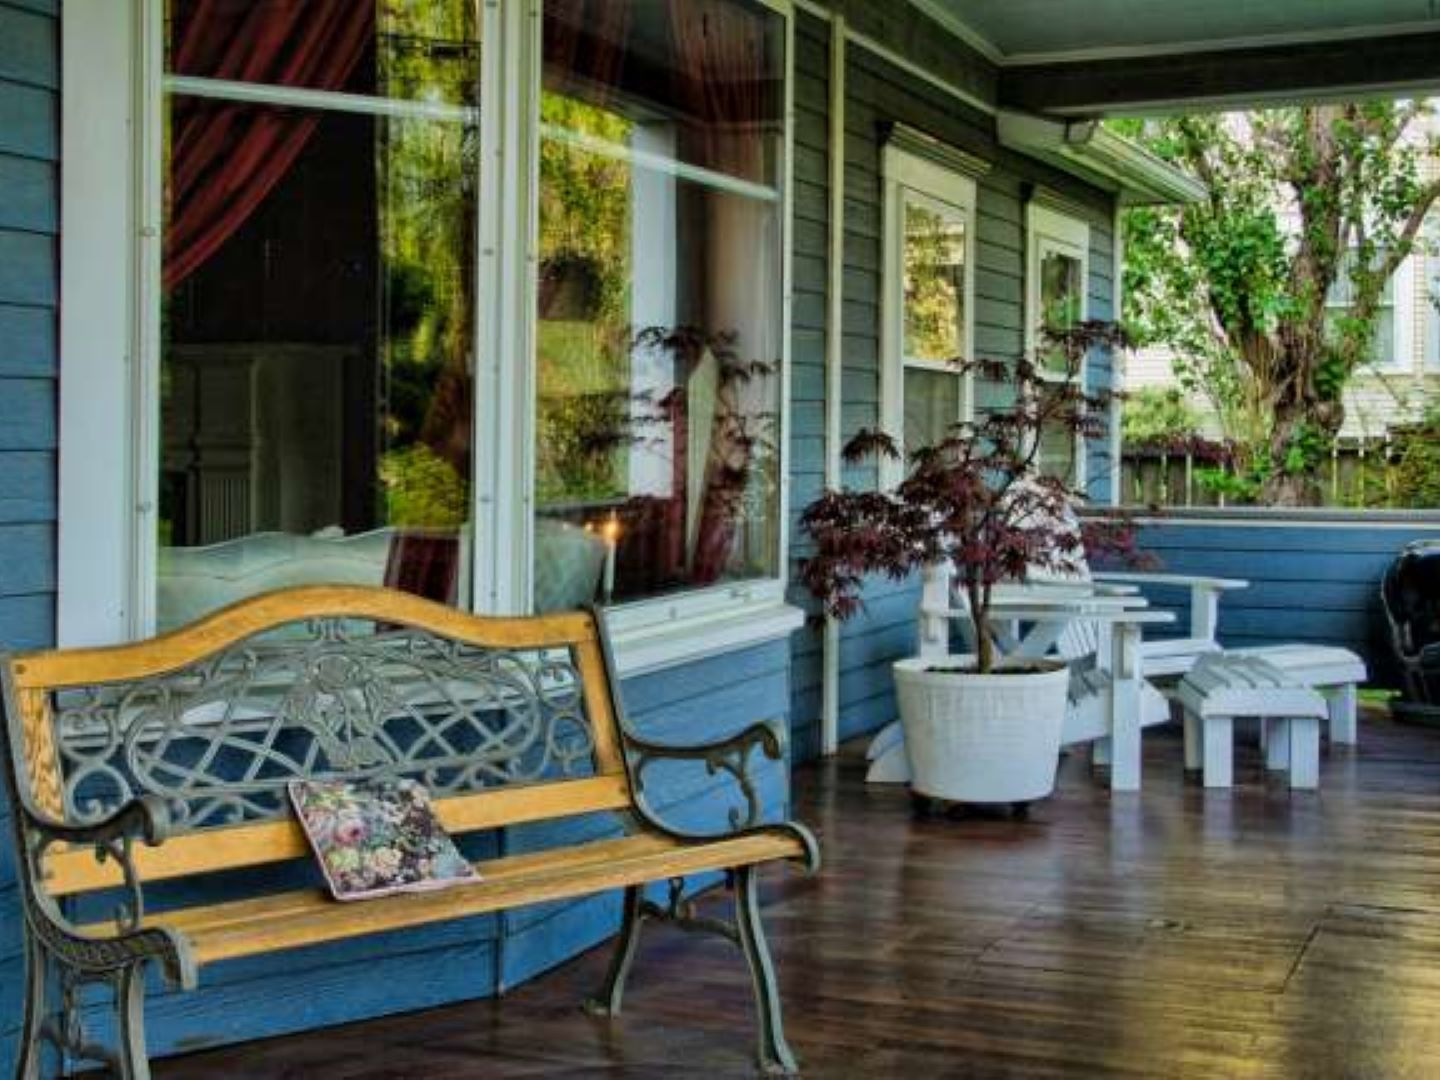 A dining room table in front of a building at Maxwell House Bed & Breakfast.